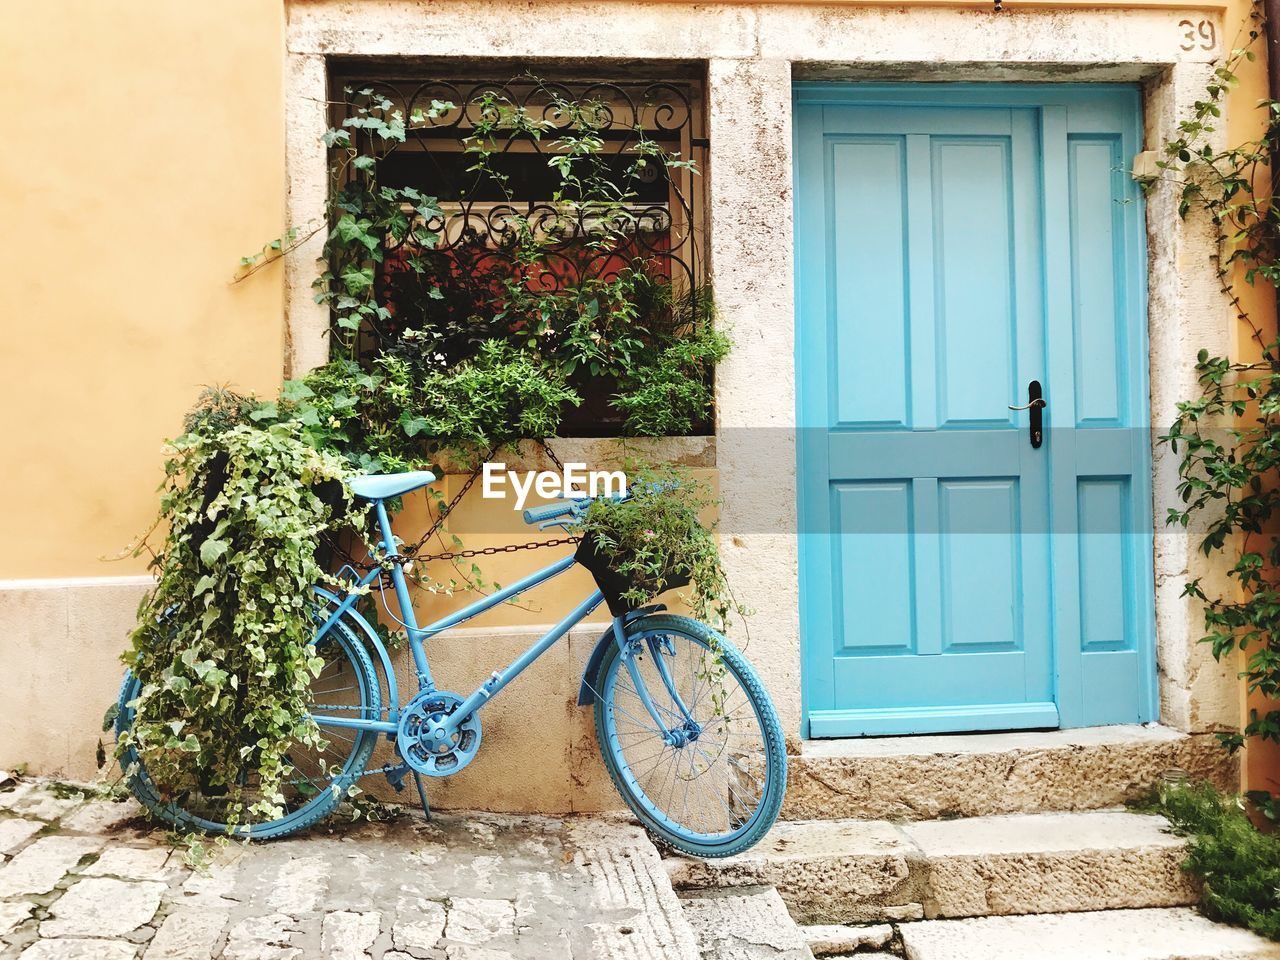 building exterior, architecture, built structure, plant, building, entrance, door, bicycle, house, growth, day, potted plant, nature, no people, window, flowering plant, flower, wall - building feature, outdoors, transportation, window box, flower pot